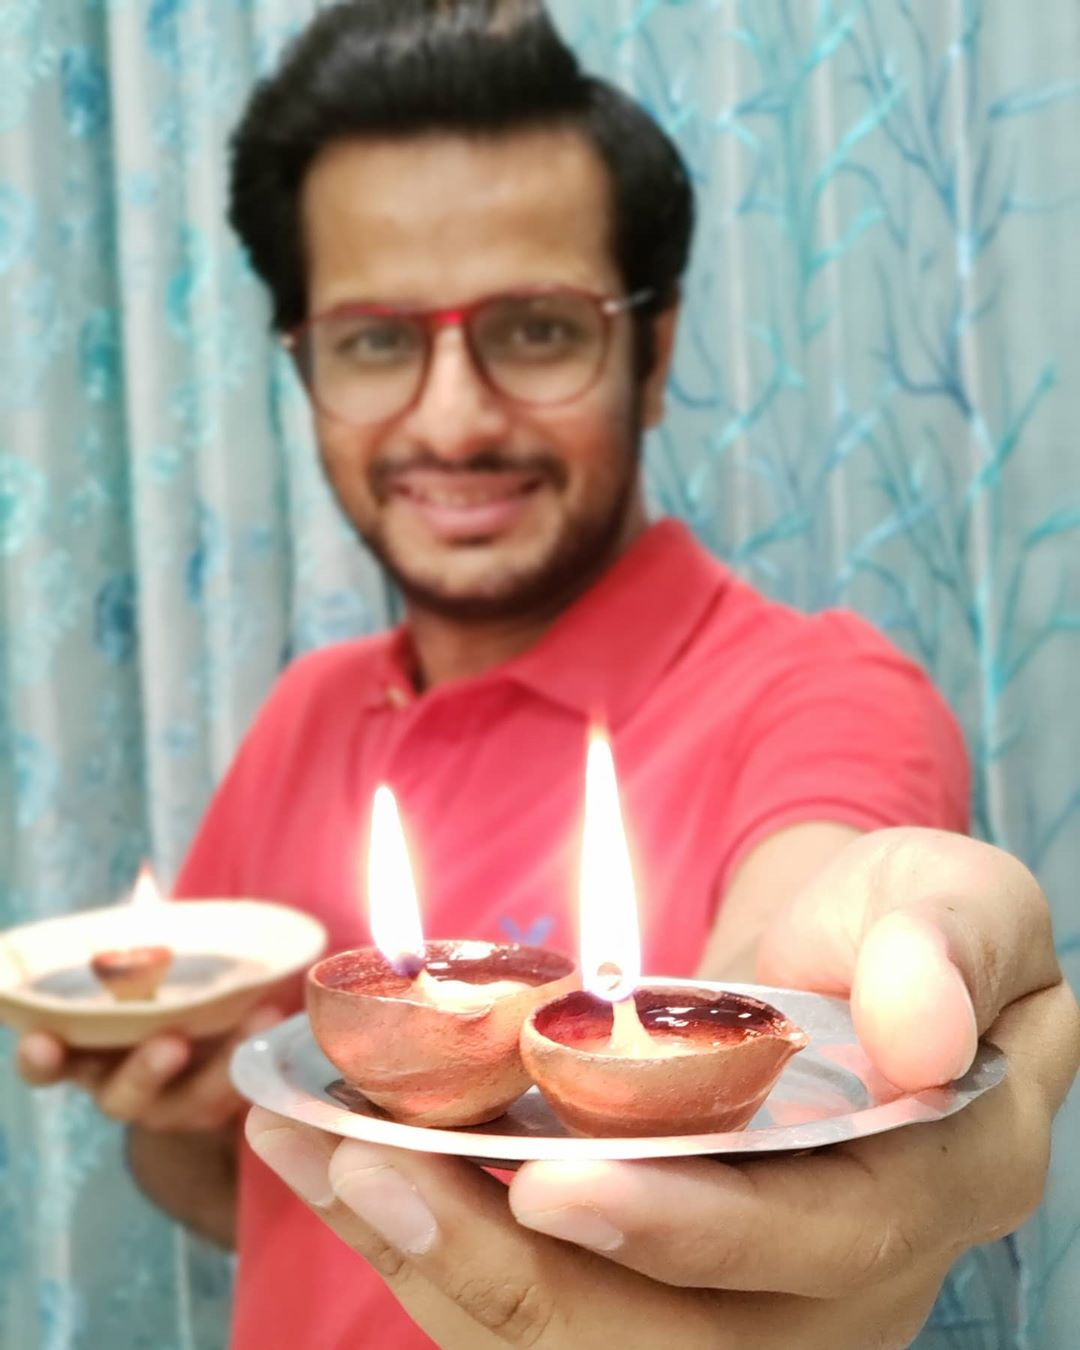 Ojas Rawal,  HappyBirthday, JayeshMore, OjasRawal, actors, birthday, wishes, gujarati, marathi, mumbai, gujarat, gujju, gujaratifilm, happy, ojas, actor, birthdaywishes, friends, pals, buddies, lovethisguy, friendshipgoals, myfriend, bff, friendship, throwback, birthdaypost, buddy, pal, friend, colleagues